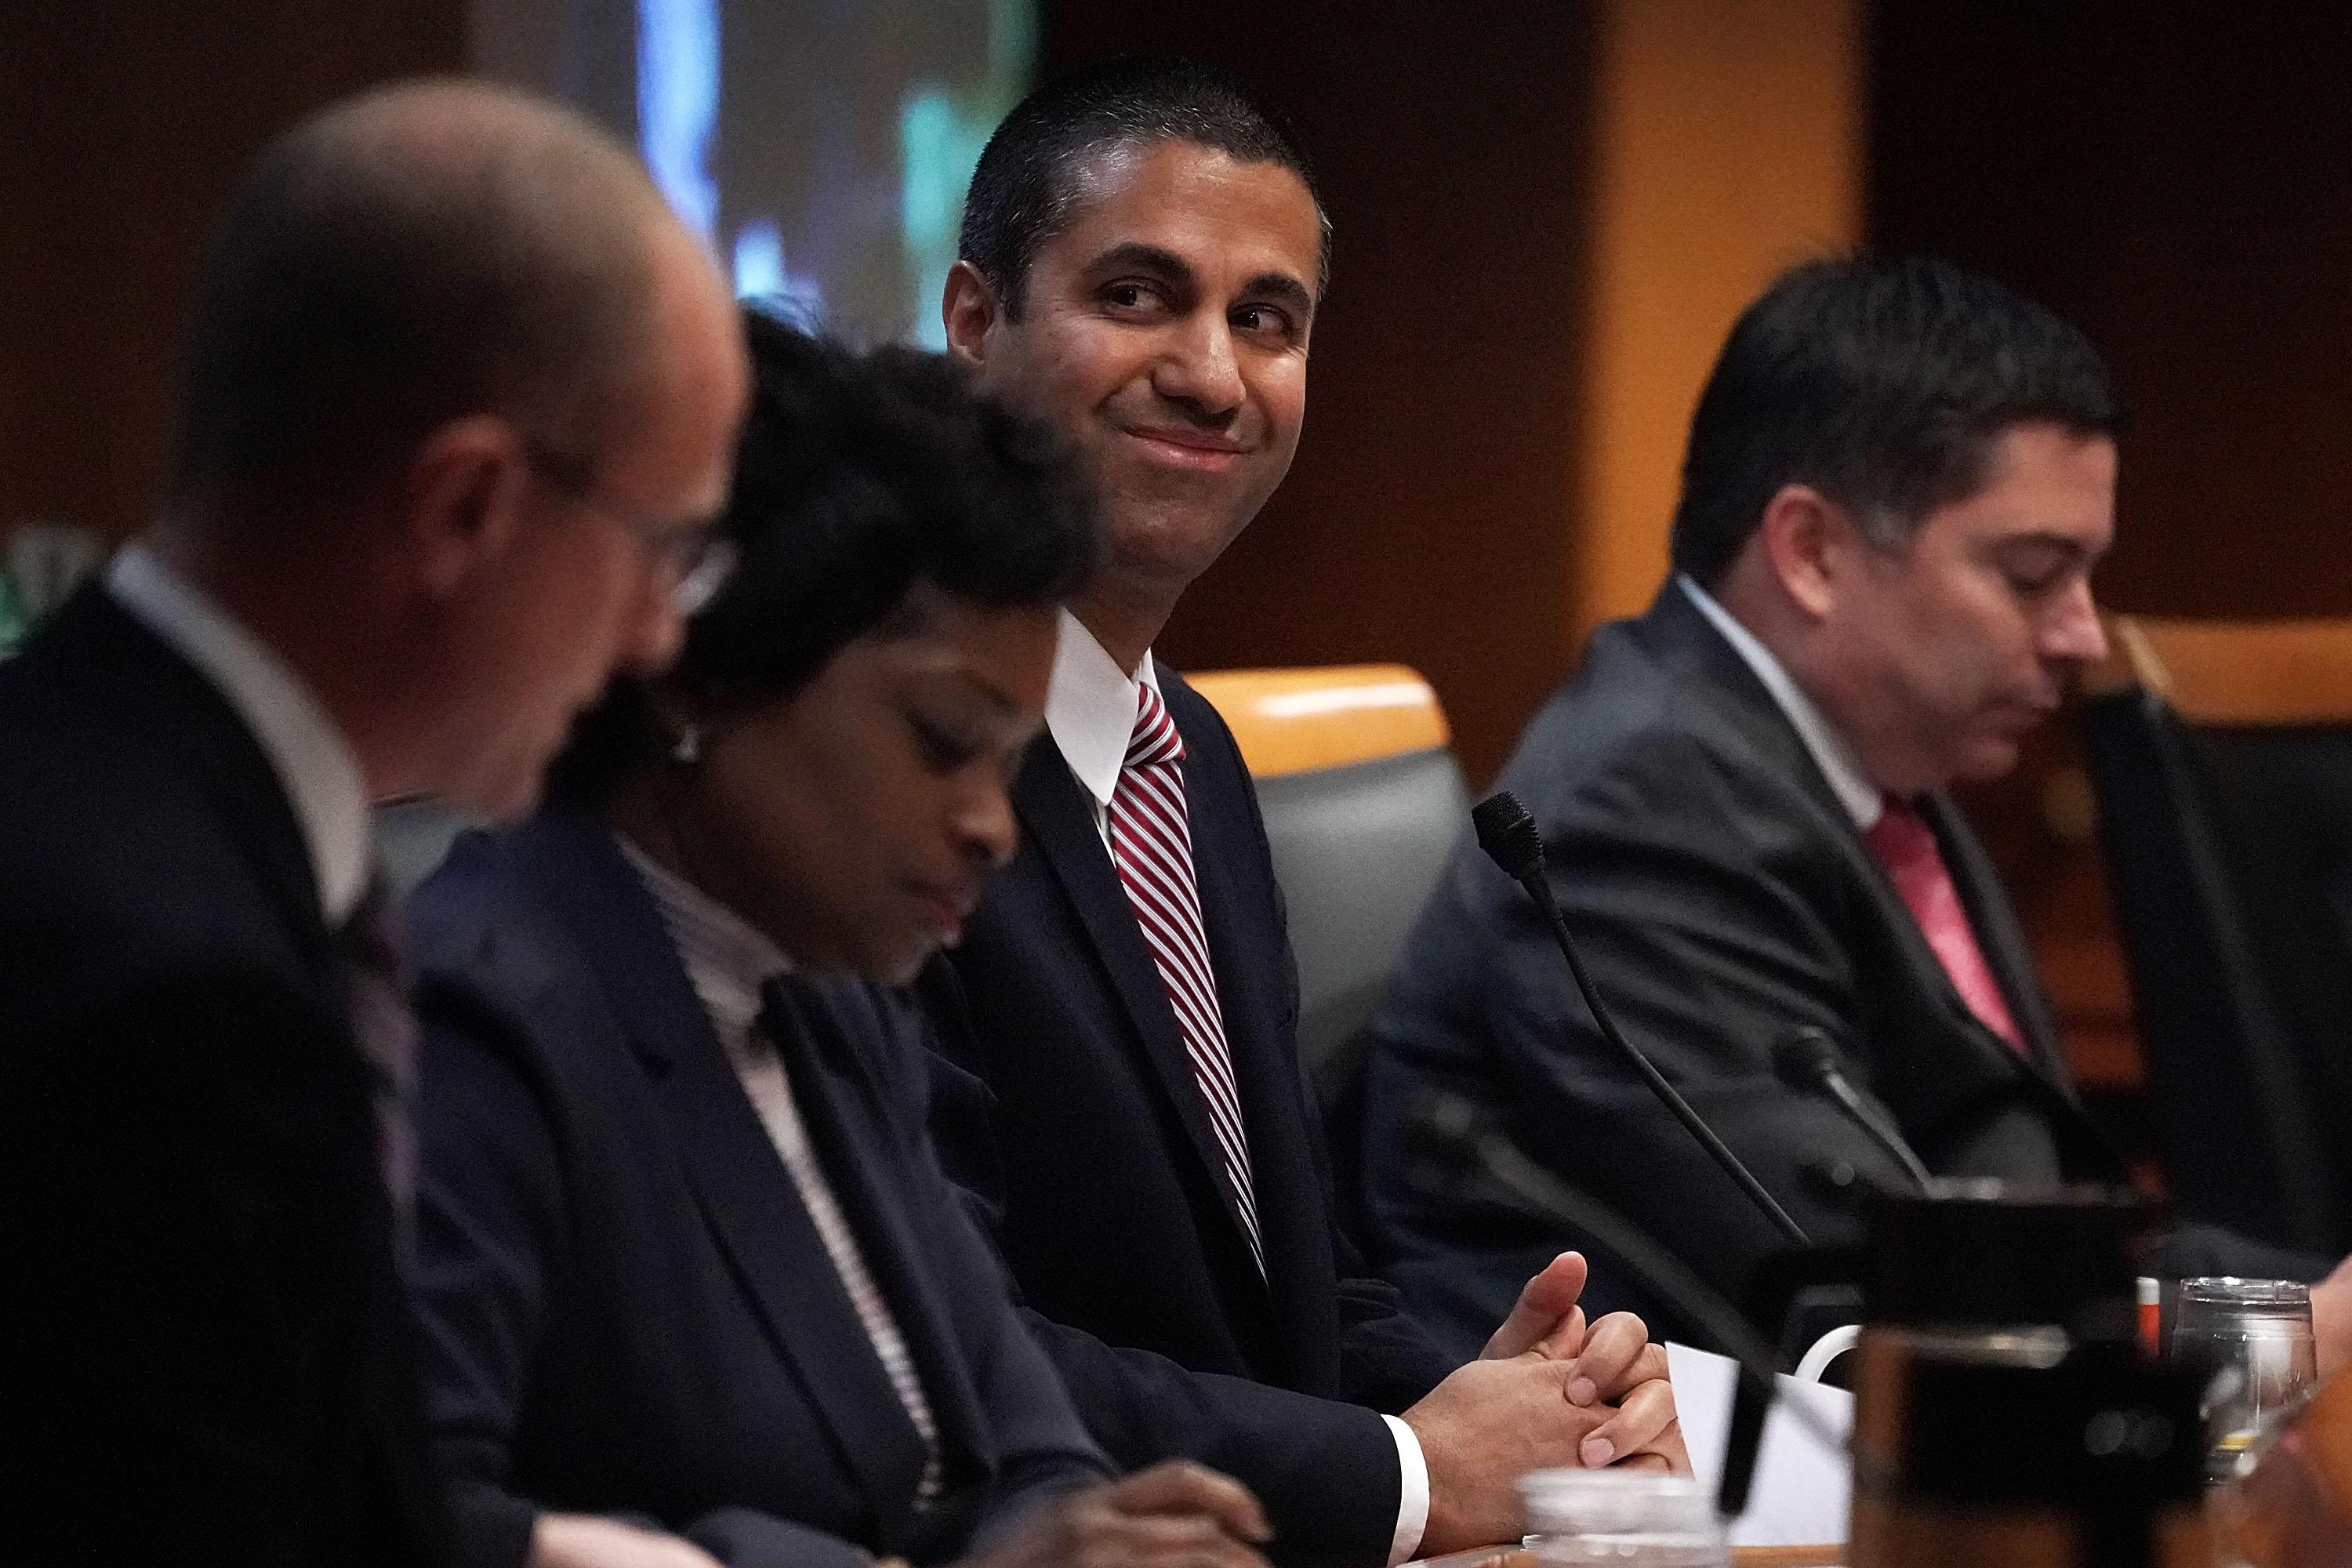 WASHINGTON DC- DECEMBER 14 Federal Communications Commission Chairman Ajit Pai smiles during a commission meeting